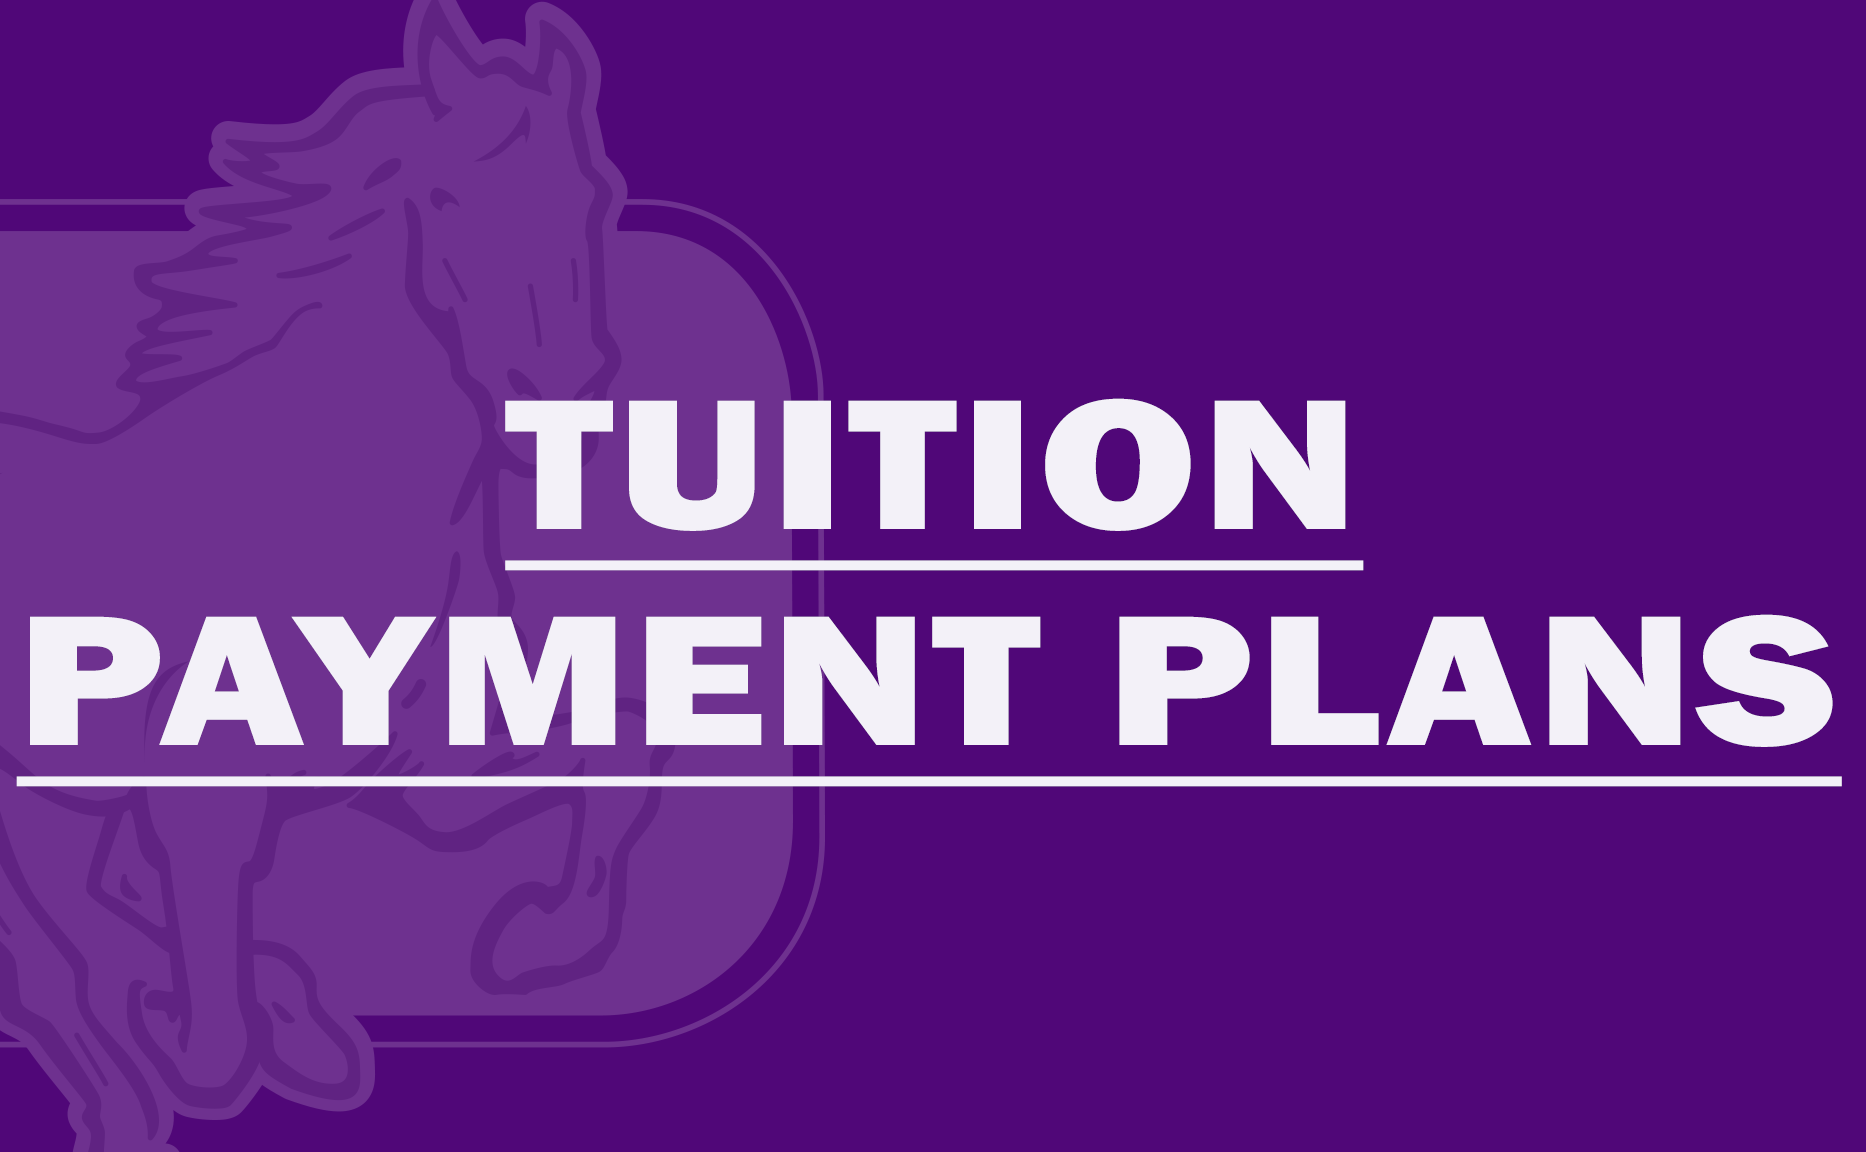 tuition pp.png